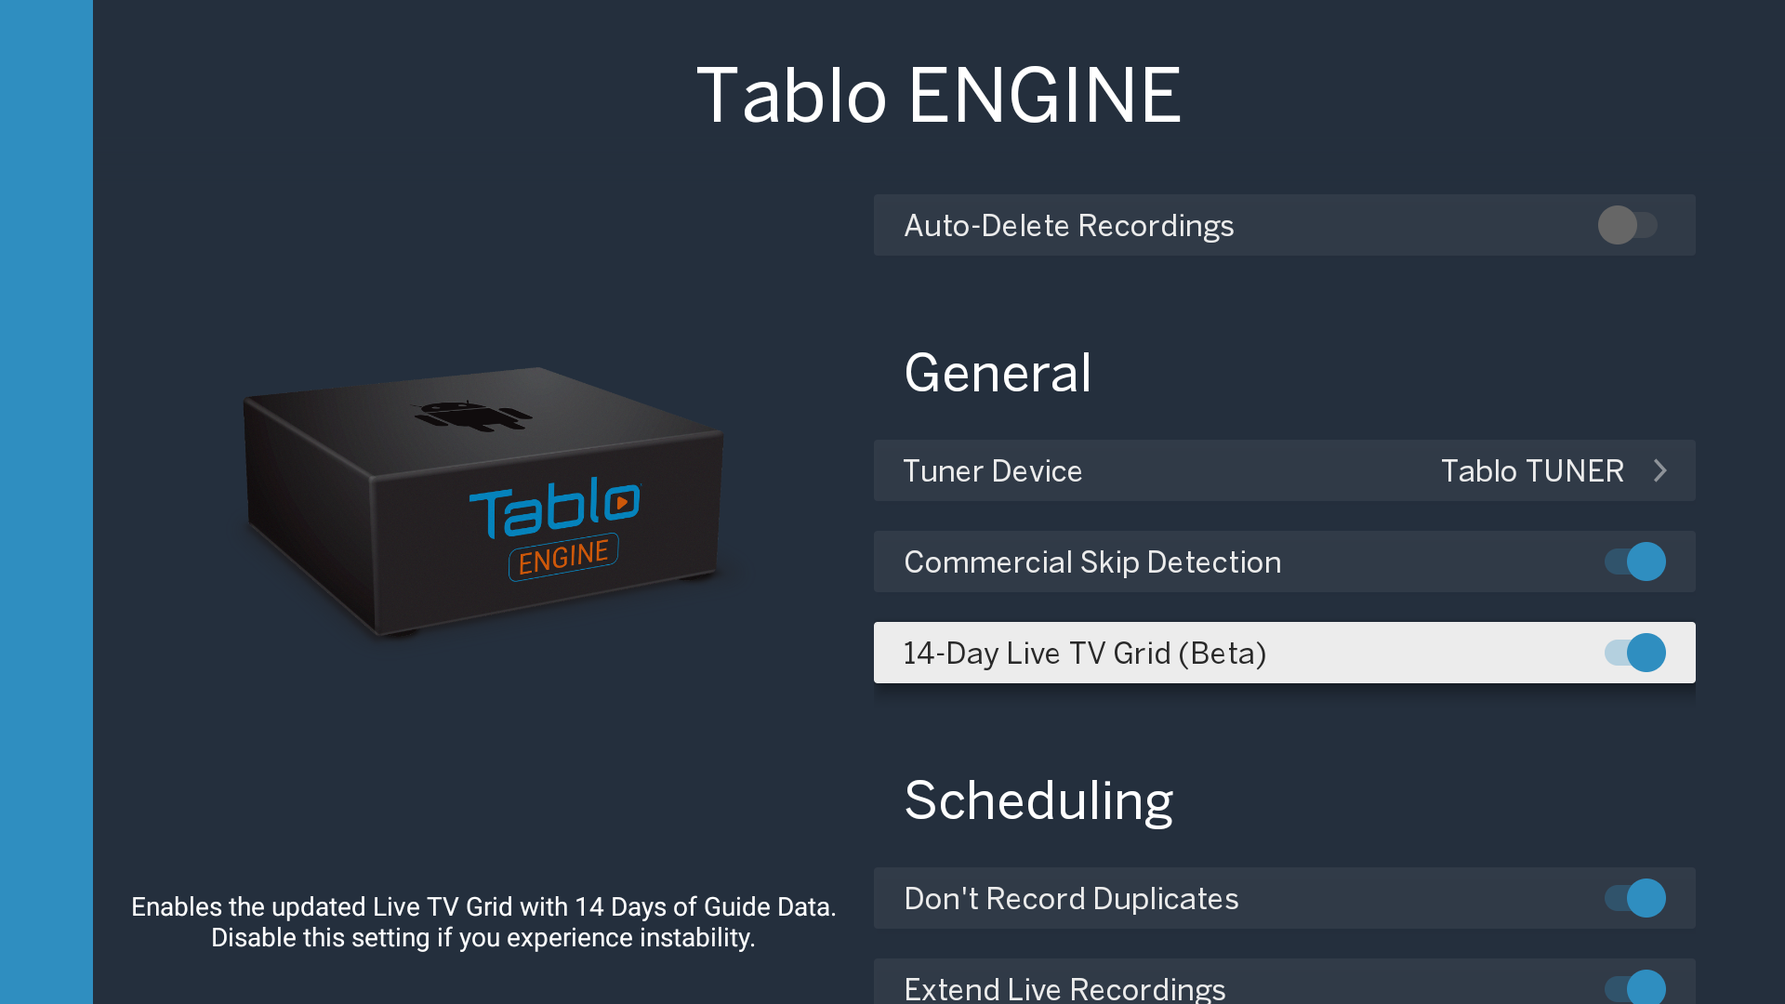 Tablo ENGINE Settings